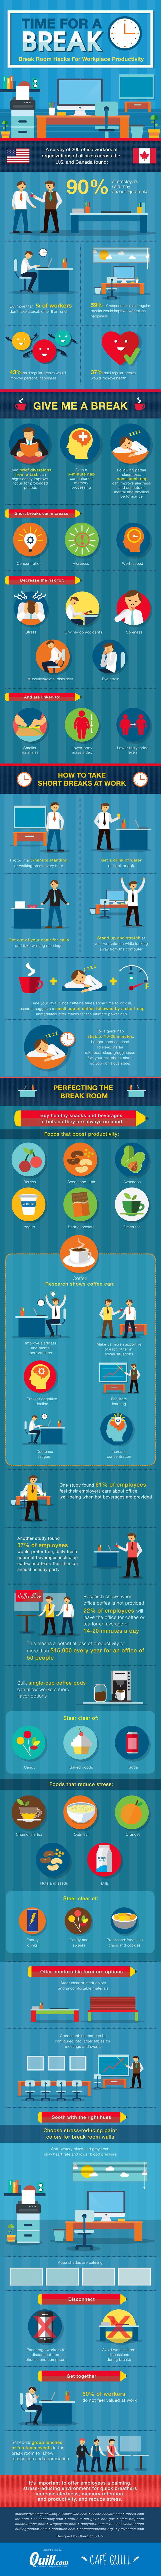 [#Infographic] Break Room Hacks For Workplace #Productivity